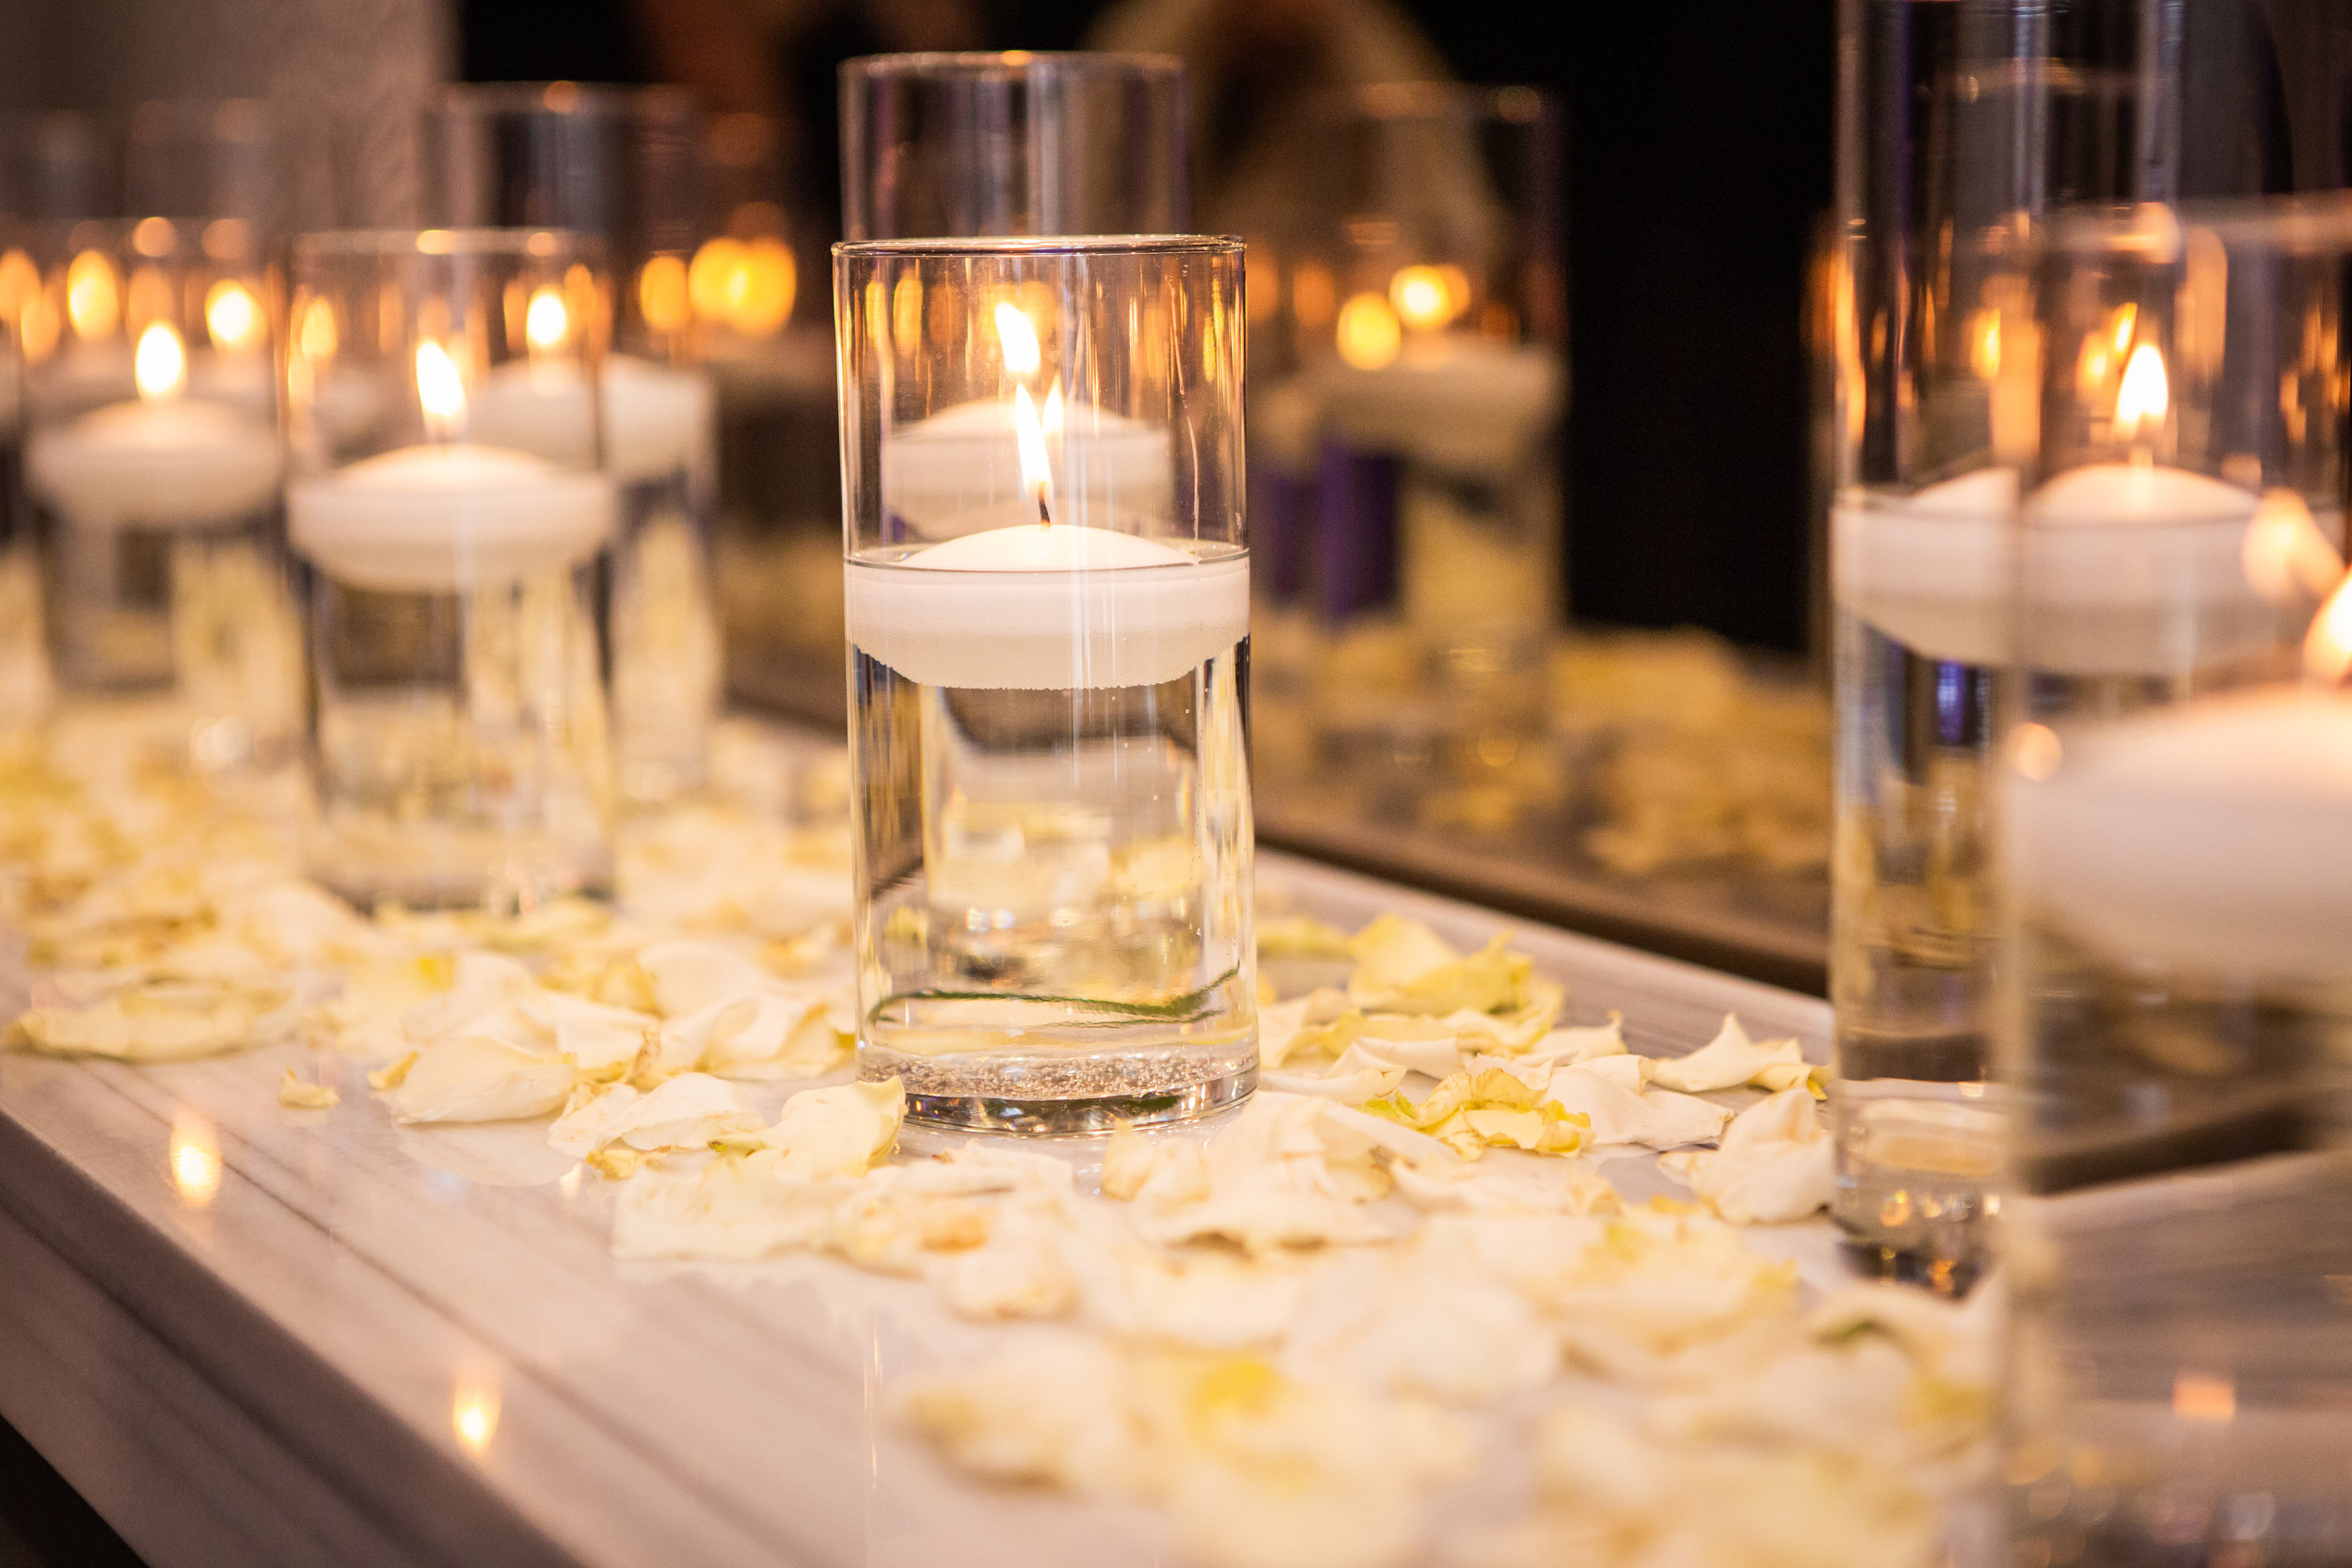 Romantic Wedding Theme Feature - Glendale, CA - Legacy Ballroom - Floating candles sitting on a bed of flower petals to set the atmosphere for the wedding ceremony.